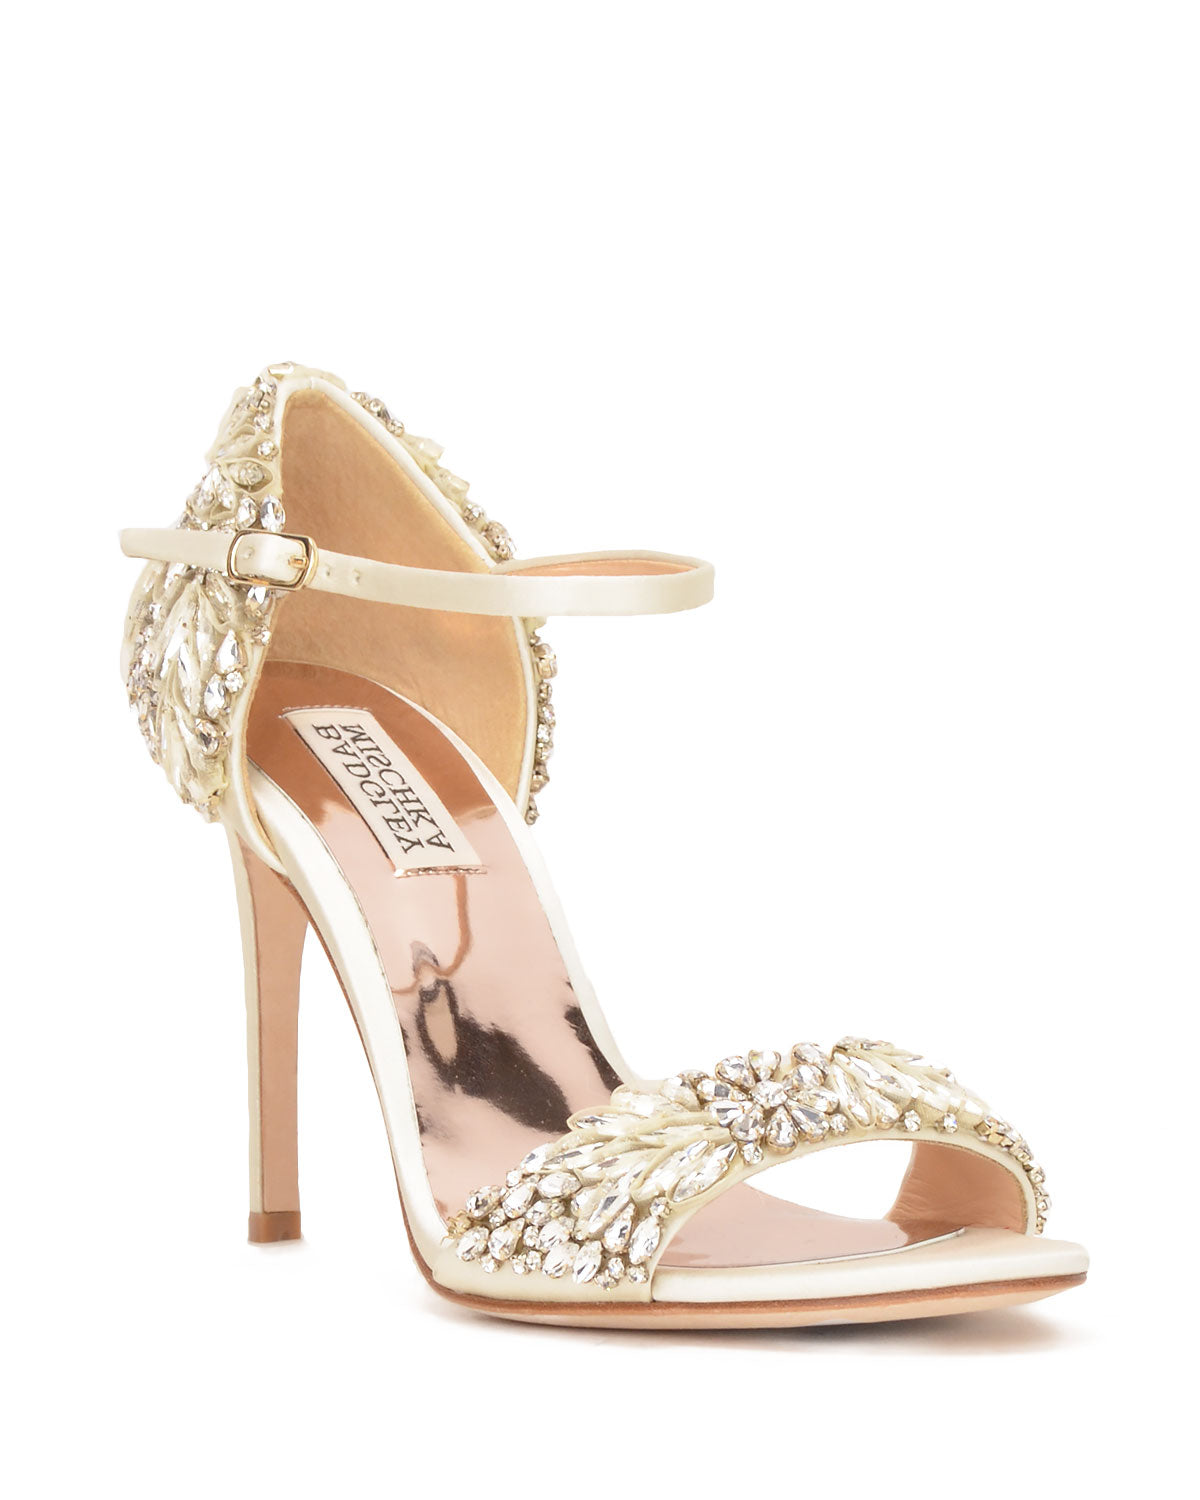 Badgley Mischka Sydney - Bridal Shoes - Tampa - Ivory